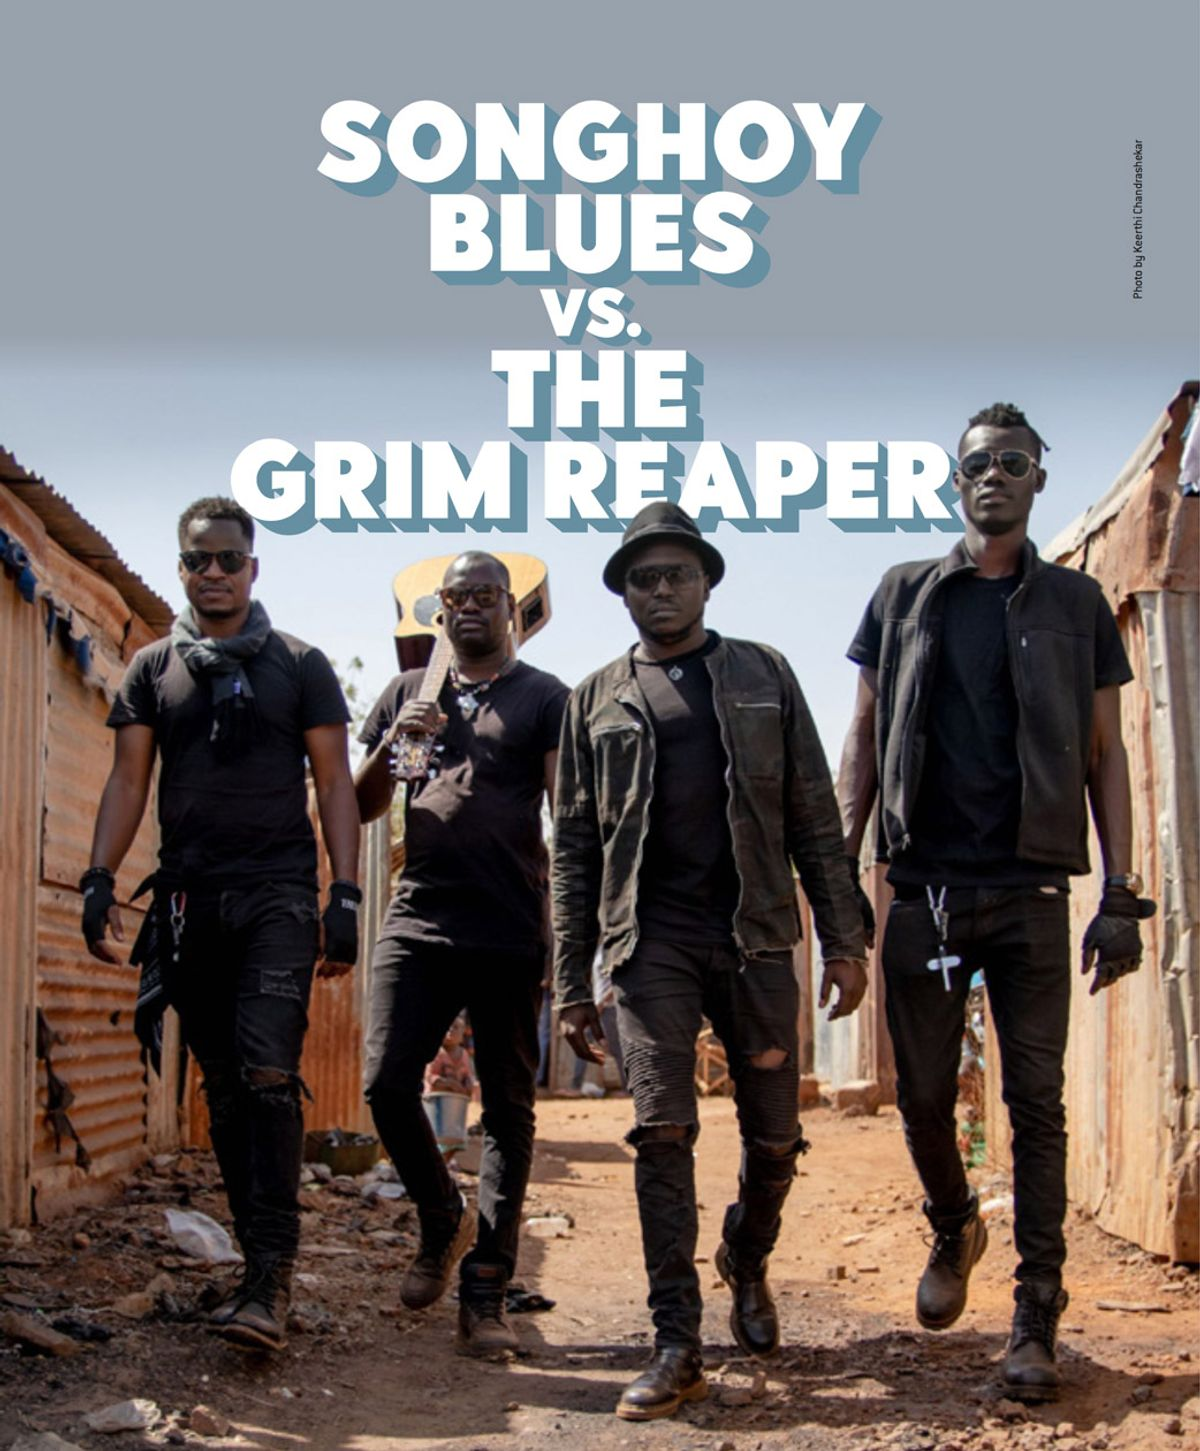 Mali's Songhoy Blues vs. the Grim Reaper